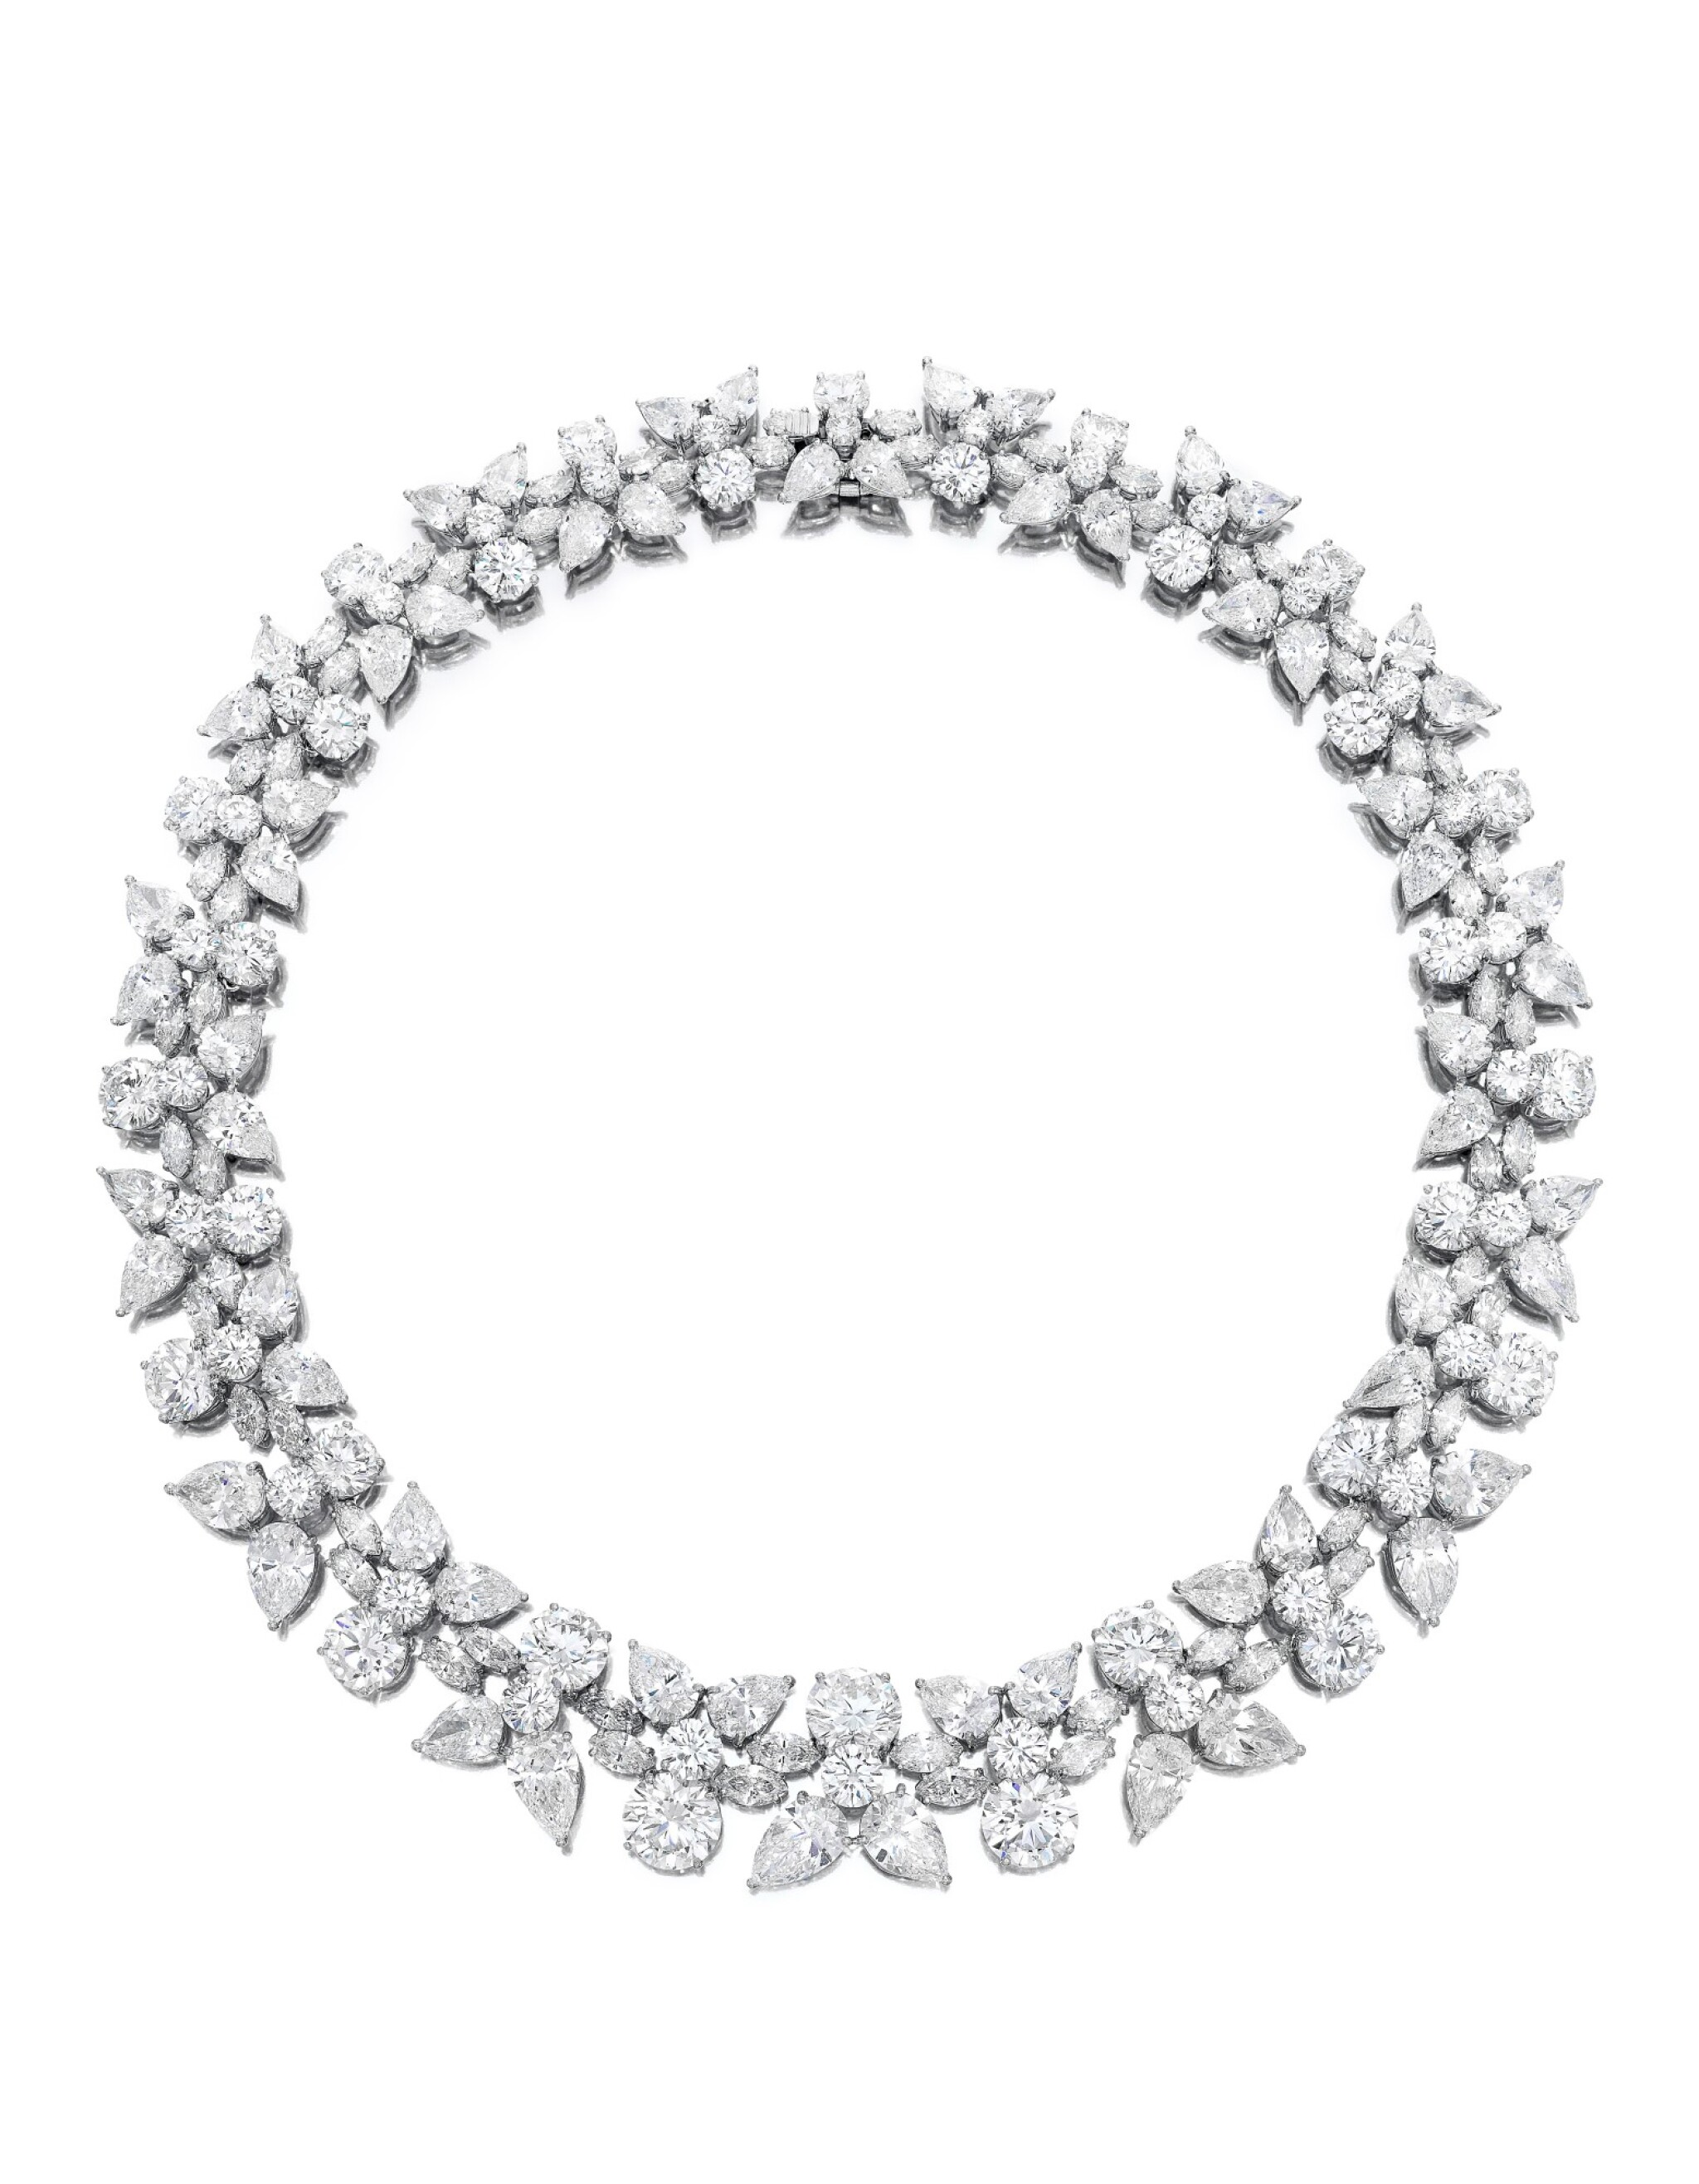 View full screen - View 1 of Lot 1754. HARRY WINSTON   'HOLLY WREATH' DIAMOND NECKLACE   海瑞溫斯頓   'Holly Wreath' 鑽石項鏈 (鑽石共重約125.00卡拉).